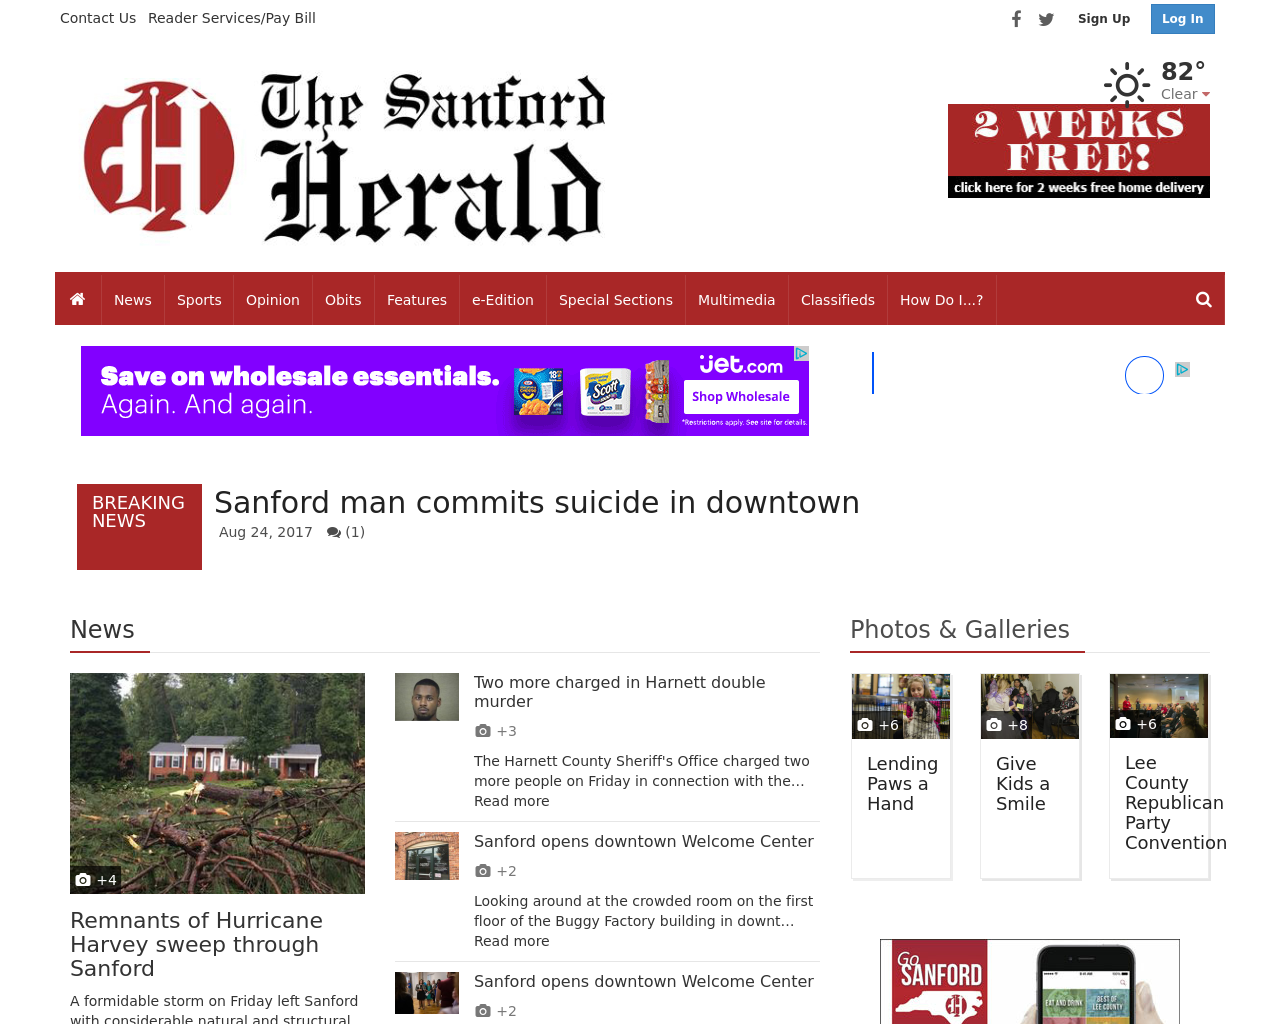 Sanford-Herald-Advertising-Reviews-Pricing